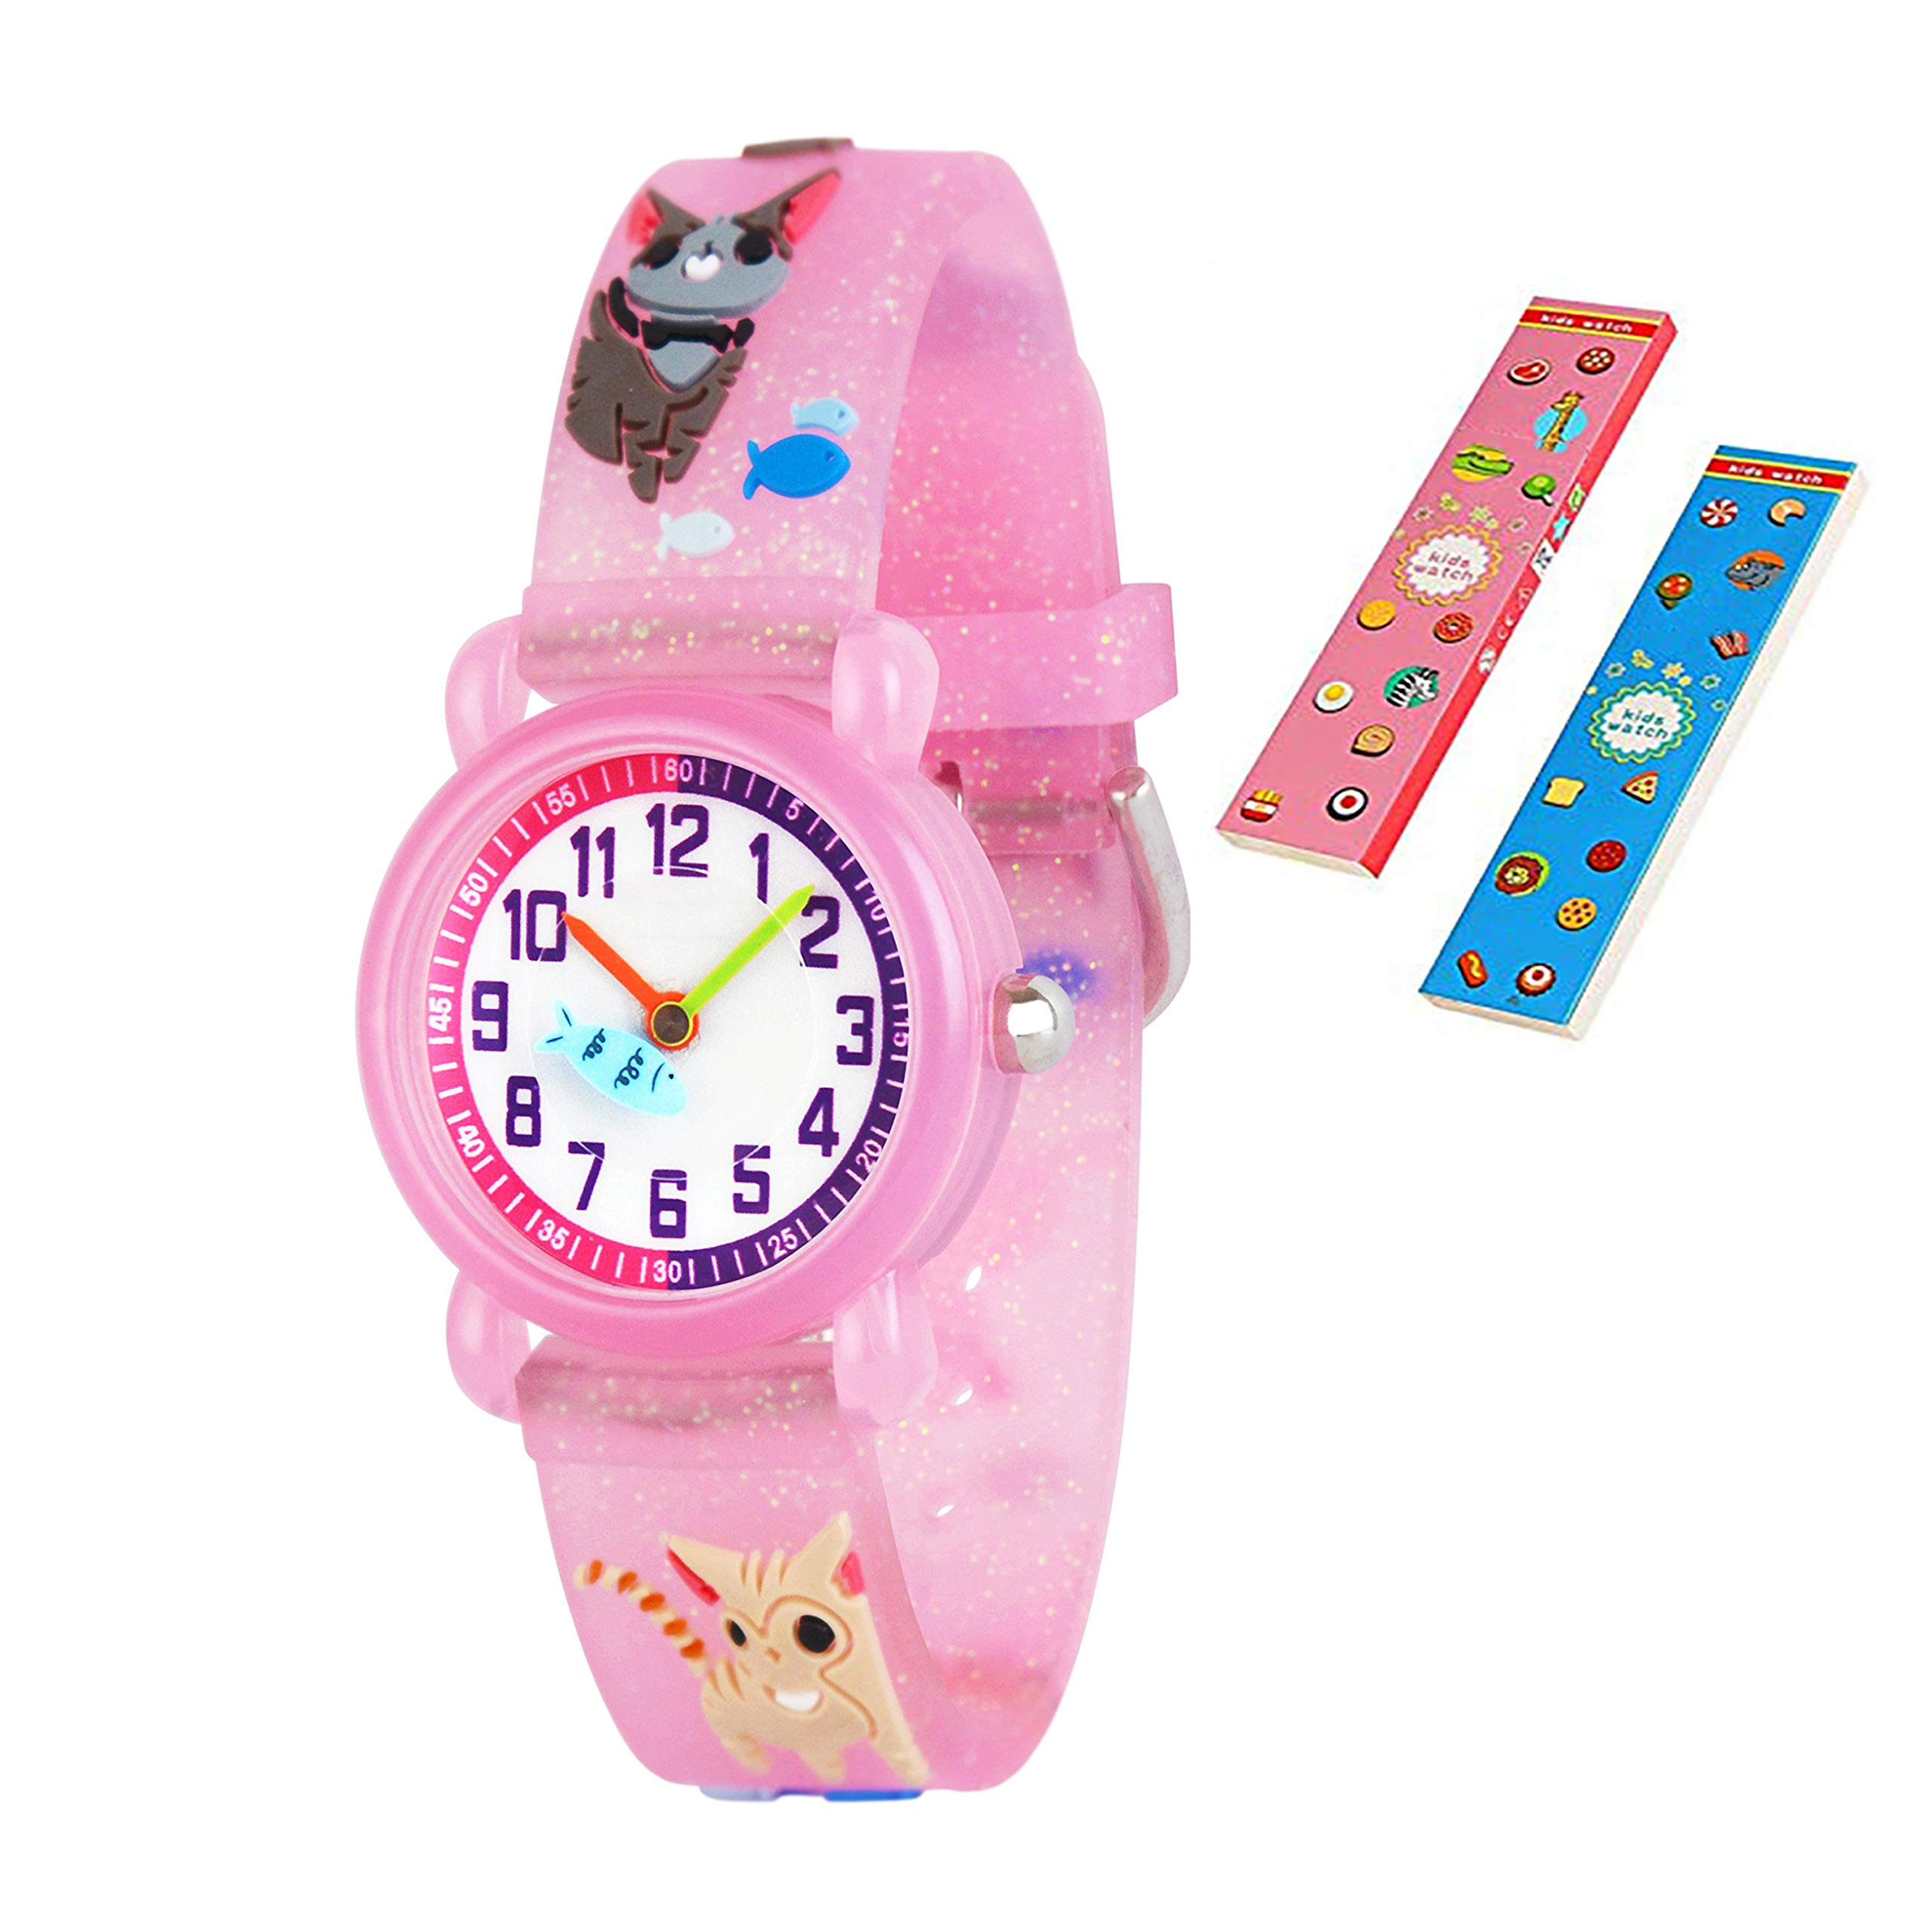 Toddler Kids Children Watch,3D Cute Cartoon Silicone Band Wristwatches Time Teacher Gifts Watches for Kids Girls Toddlers (Pink Cat)